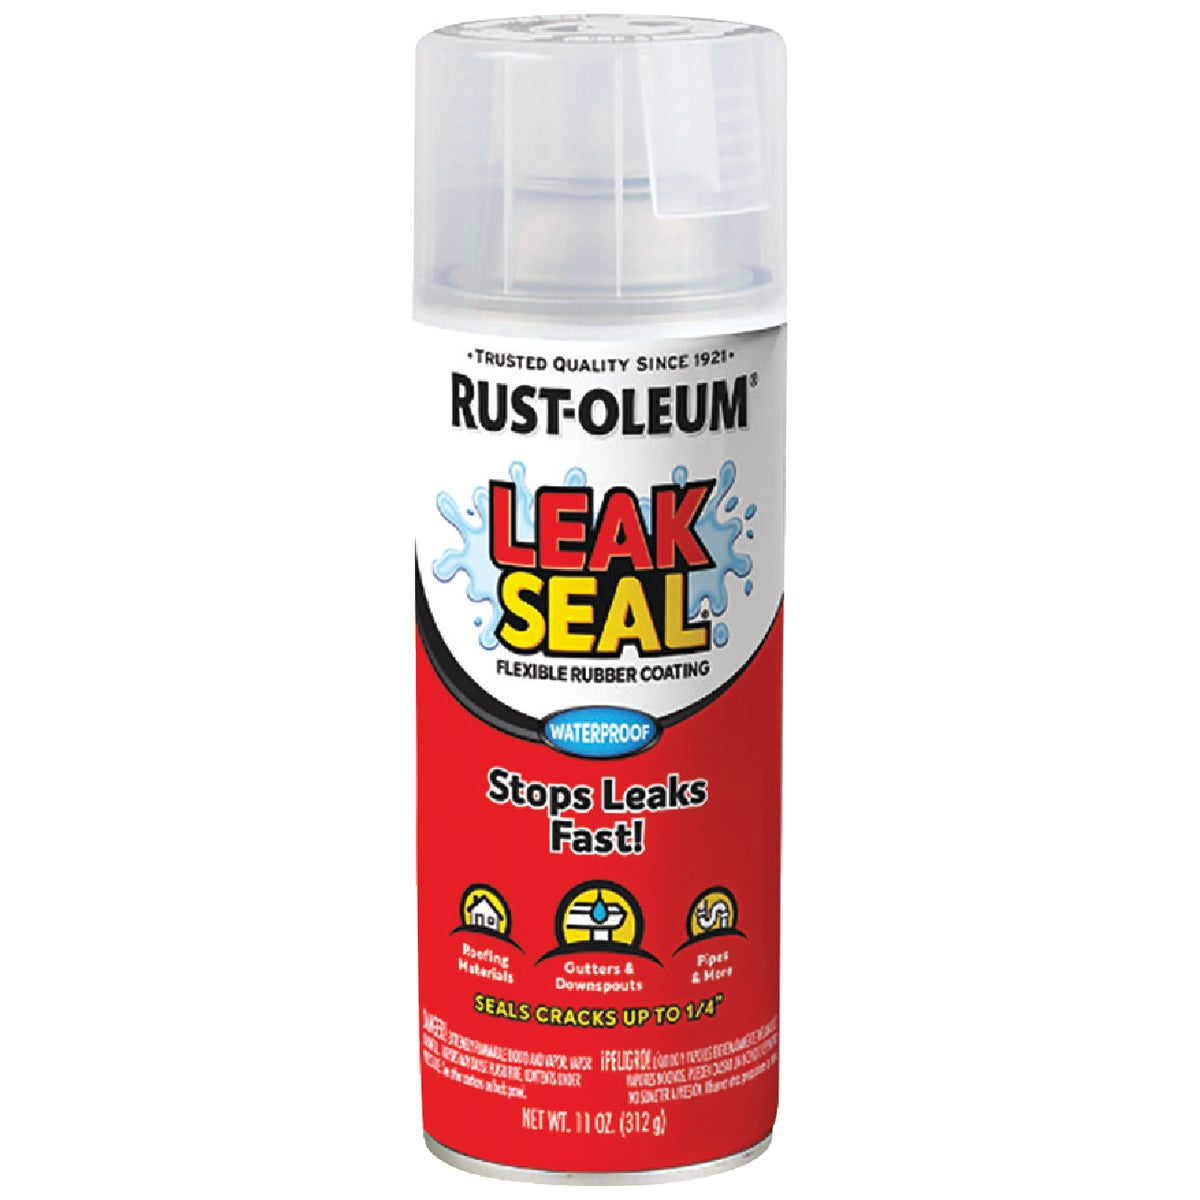 SPRAY CLEAR LEAK SEALER - 265495 by Rustoleum